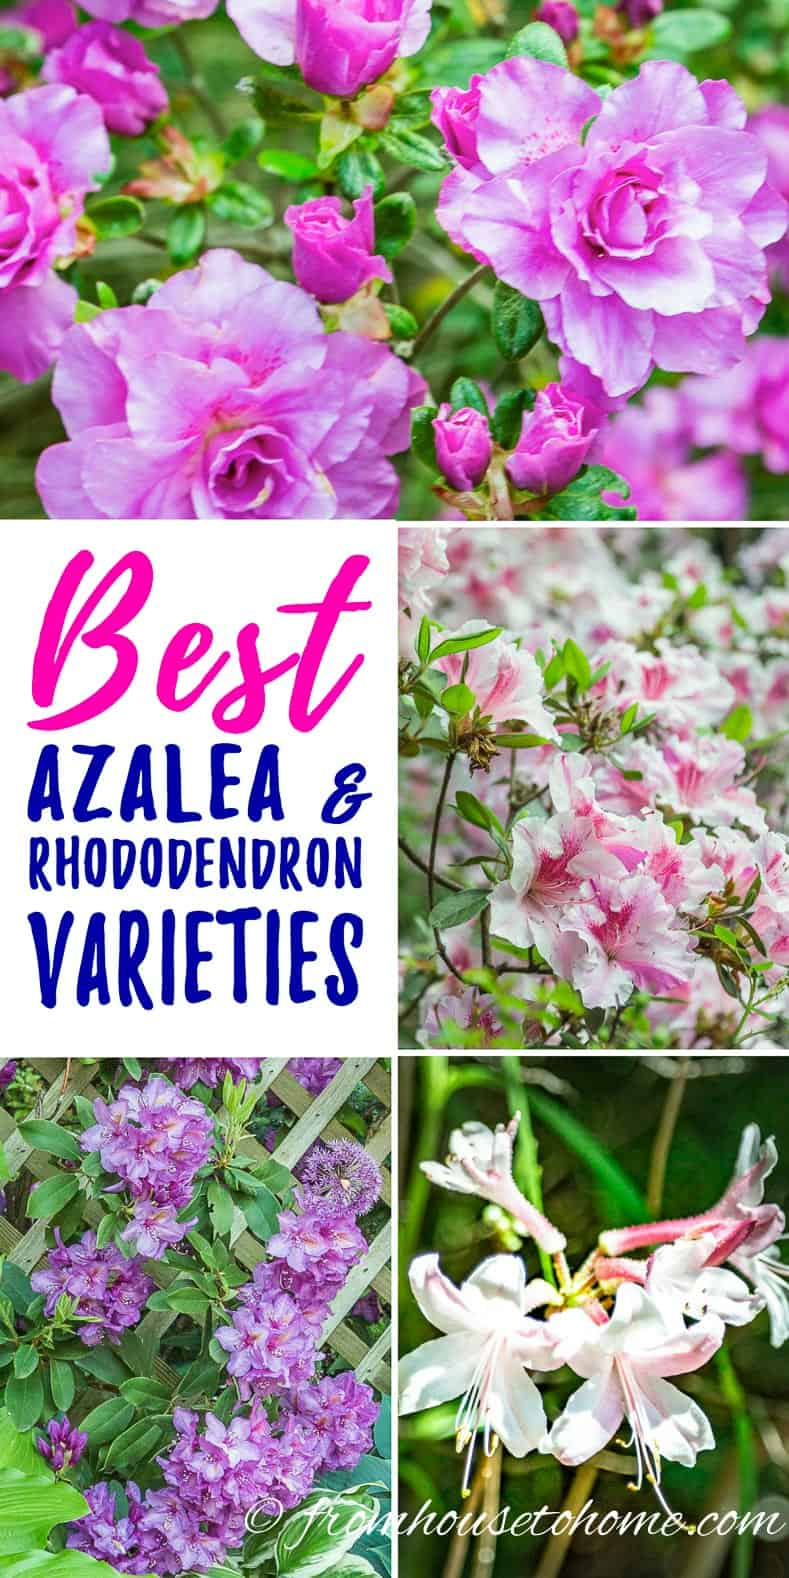 7 Of The Best Azalea And Rhododendron Varieties Gardening From